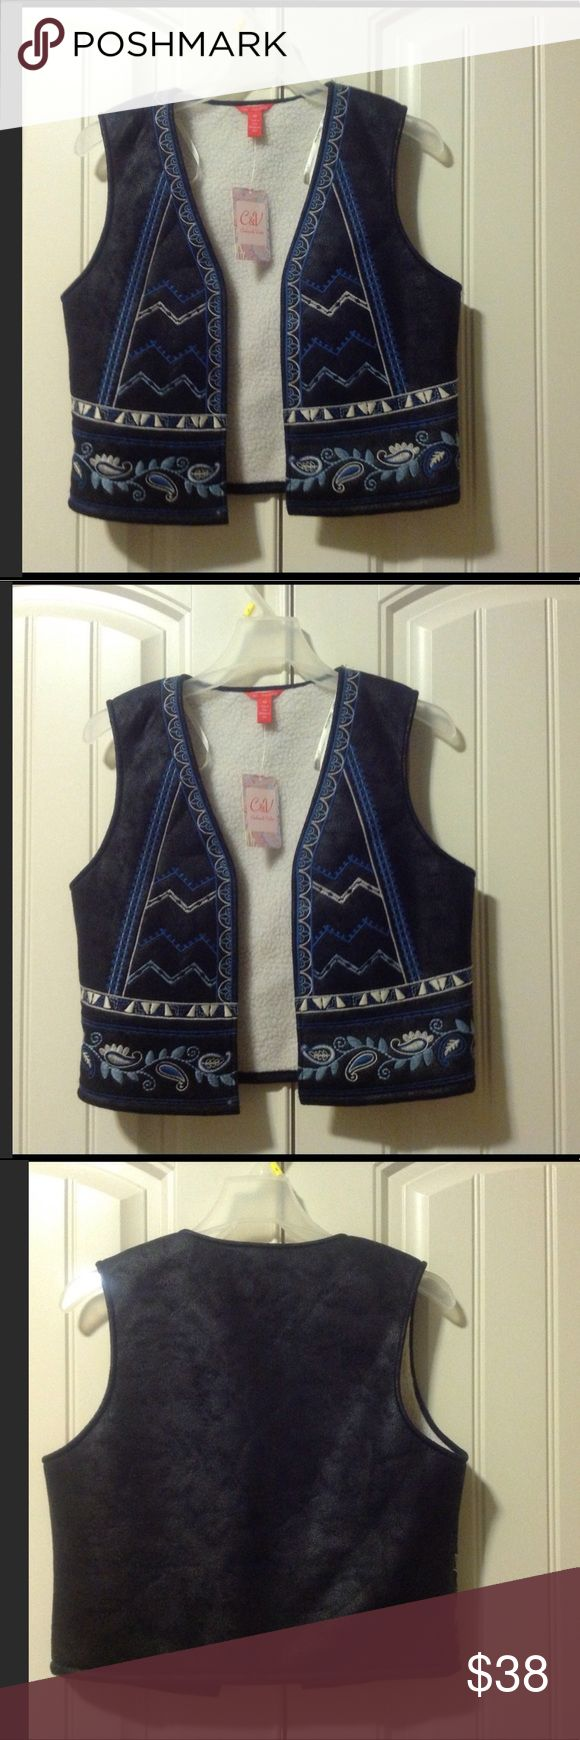 🆕CHELSEA &VIOLET WOMENS EMBROIDERED VEST (Sz M) Chelsea &Violet black blue vest with fleece lined. It has blue and white stitched design sound front. The lining inside is fleece . Material Shell/ Exterior- 100% polyester . Contrast -100% Rayon. BRAND NEW WITH TAG. Chelsea & Violet Jackets & Coats Vests